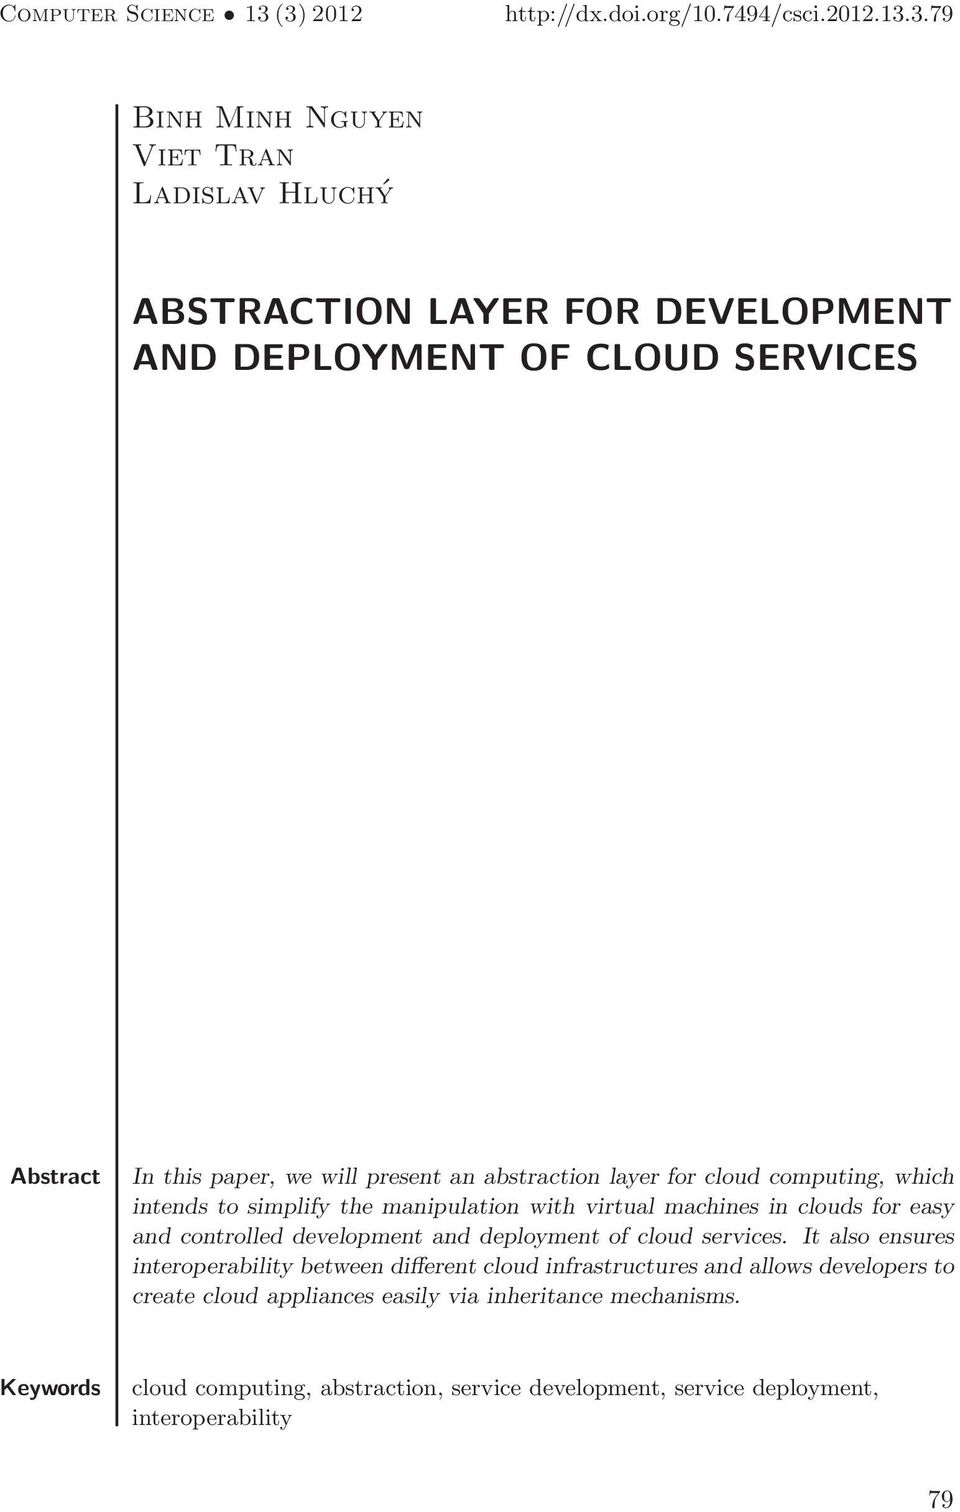 Abstract In this paper, we will present an abstraction layer for cloud computing, which intends to simplify the manipulation with virtual machines in clouds for easy